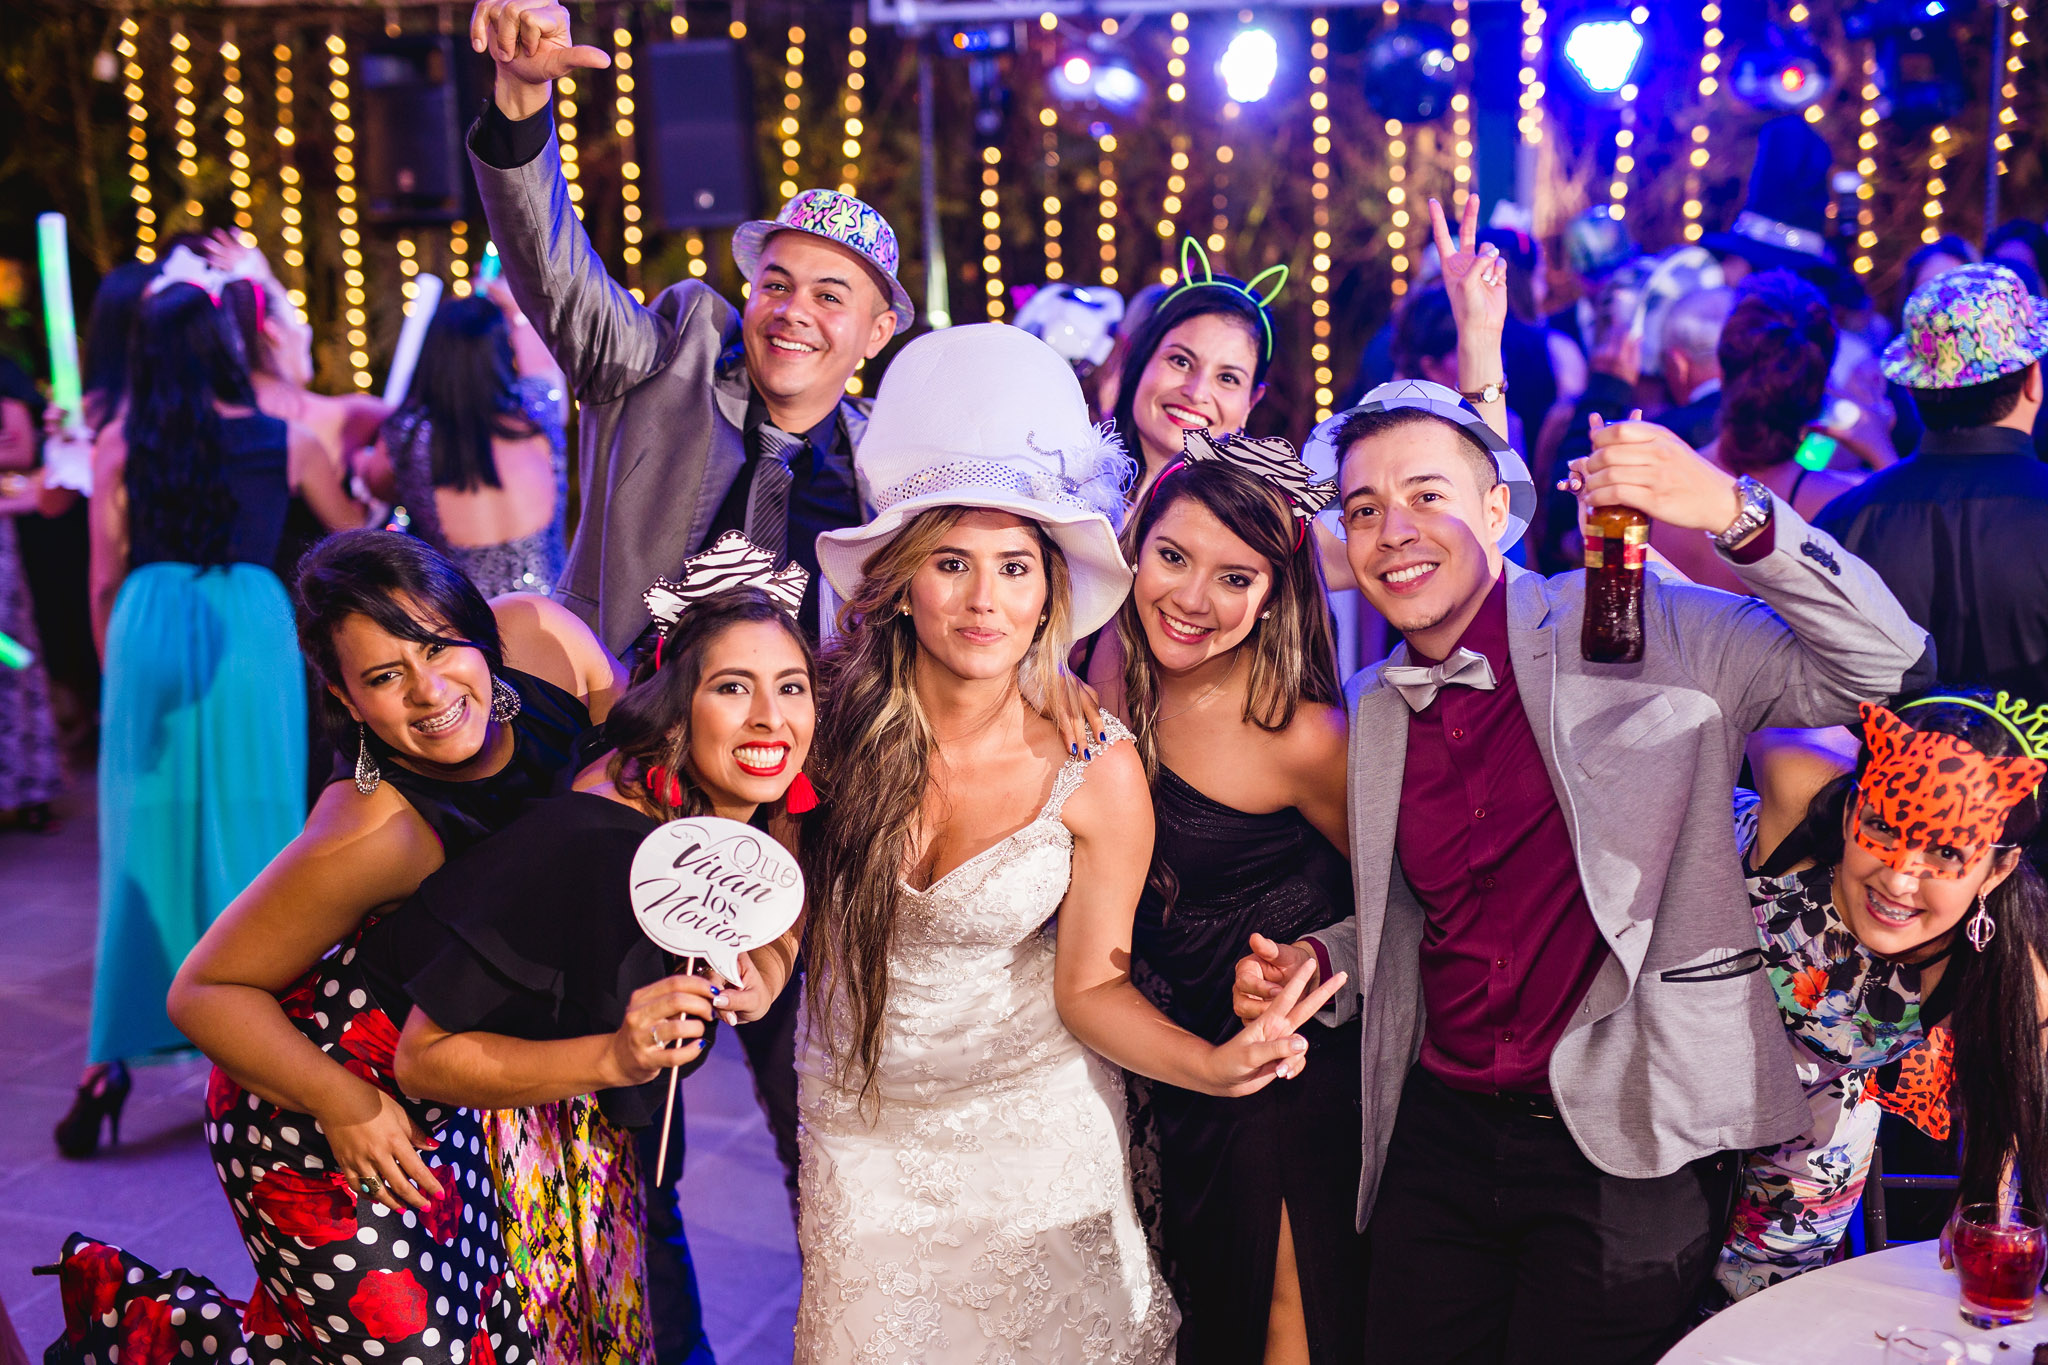 wedding-travellers-destination-wedding-photography-colombia-medellin-chuscalito-party-hora-loca